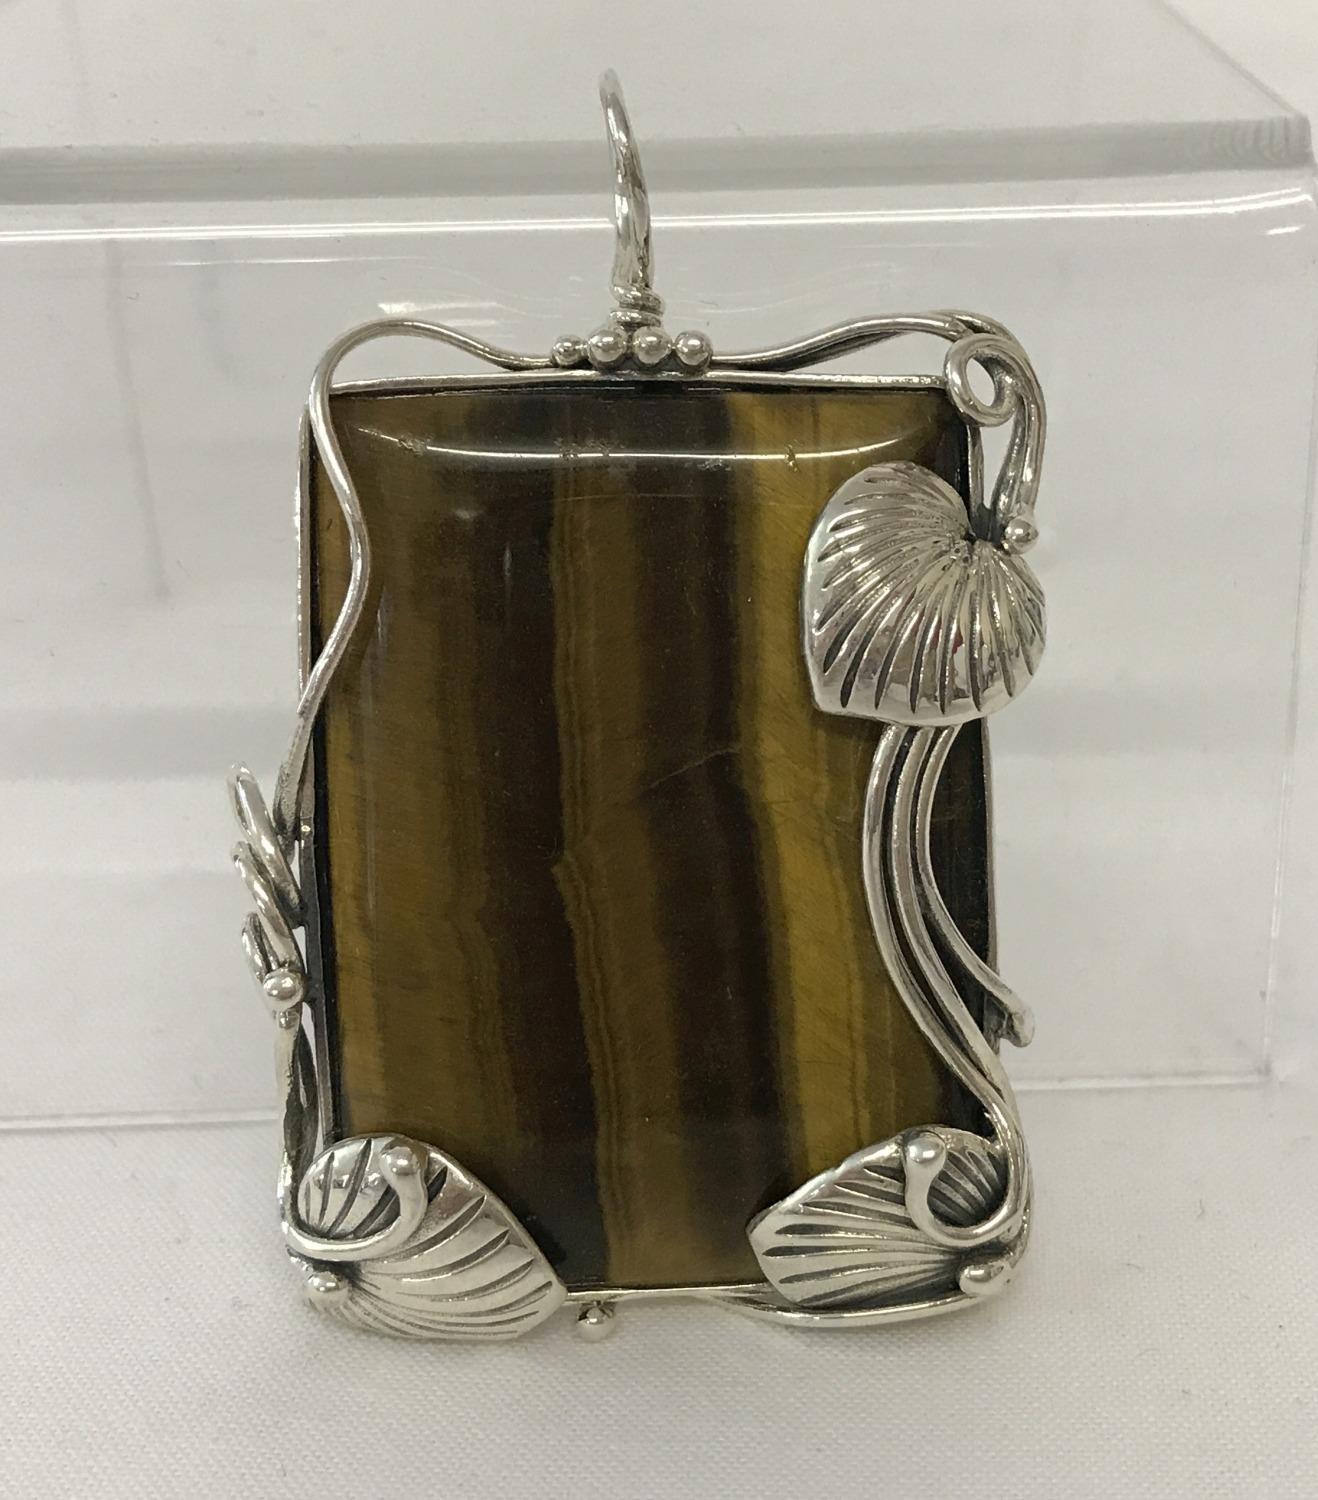 Lot 1095 - A large rectangular shaped Tiger's eye pendant framed in an Art Nouveau style 925 silver mount.